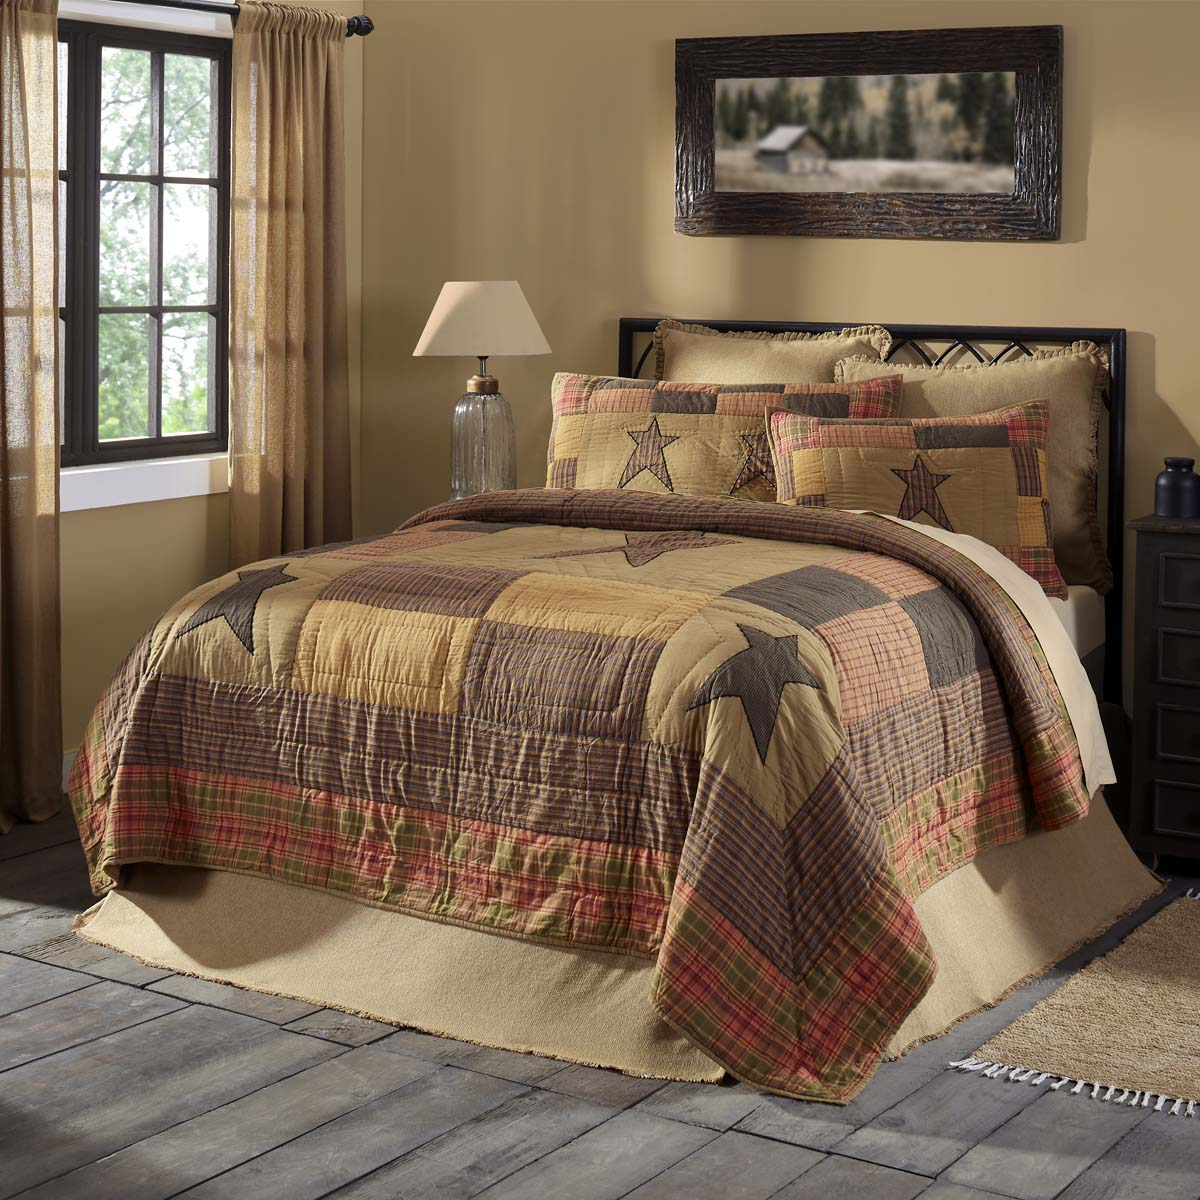 Stratton King Quilt 105Wx95L - Woodrol